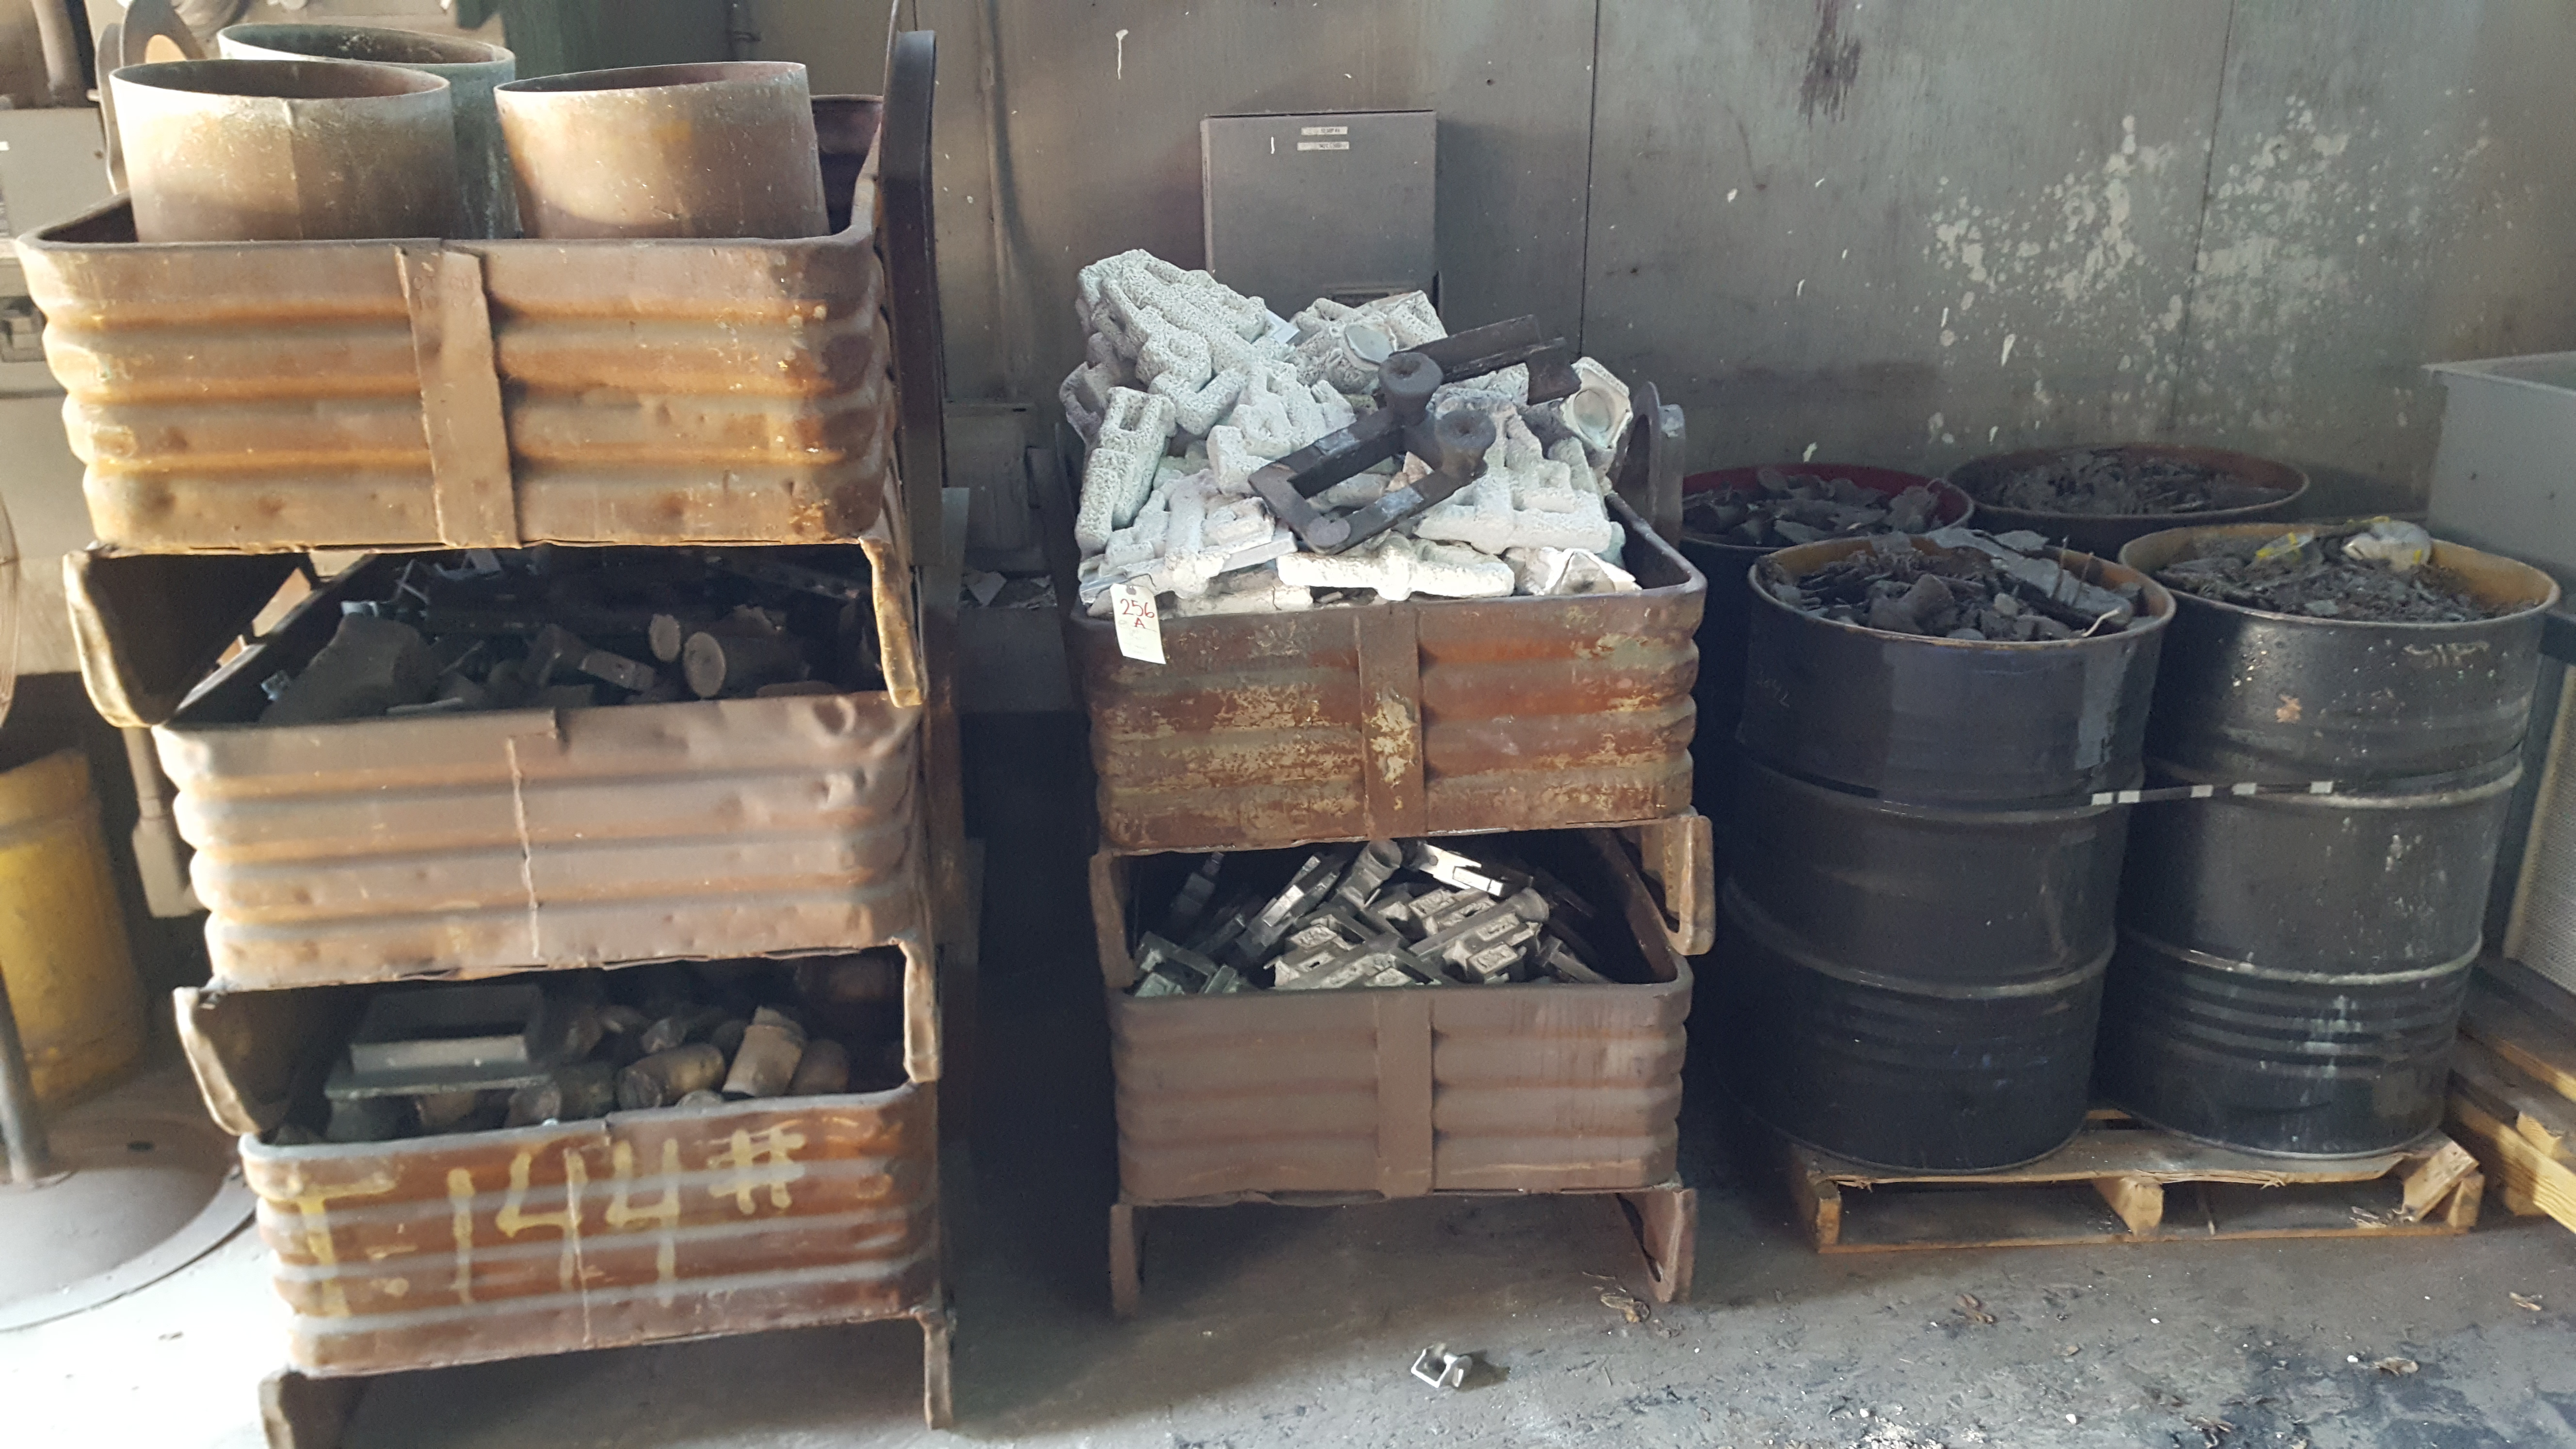 Lot 256a - 5 BINS WITH MOLDS AND PARTS